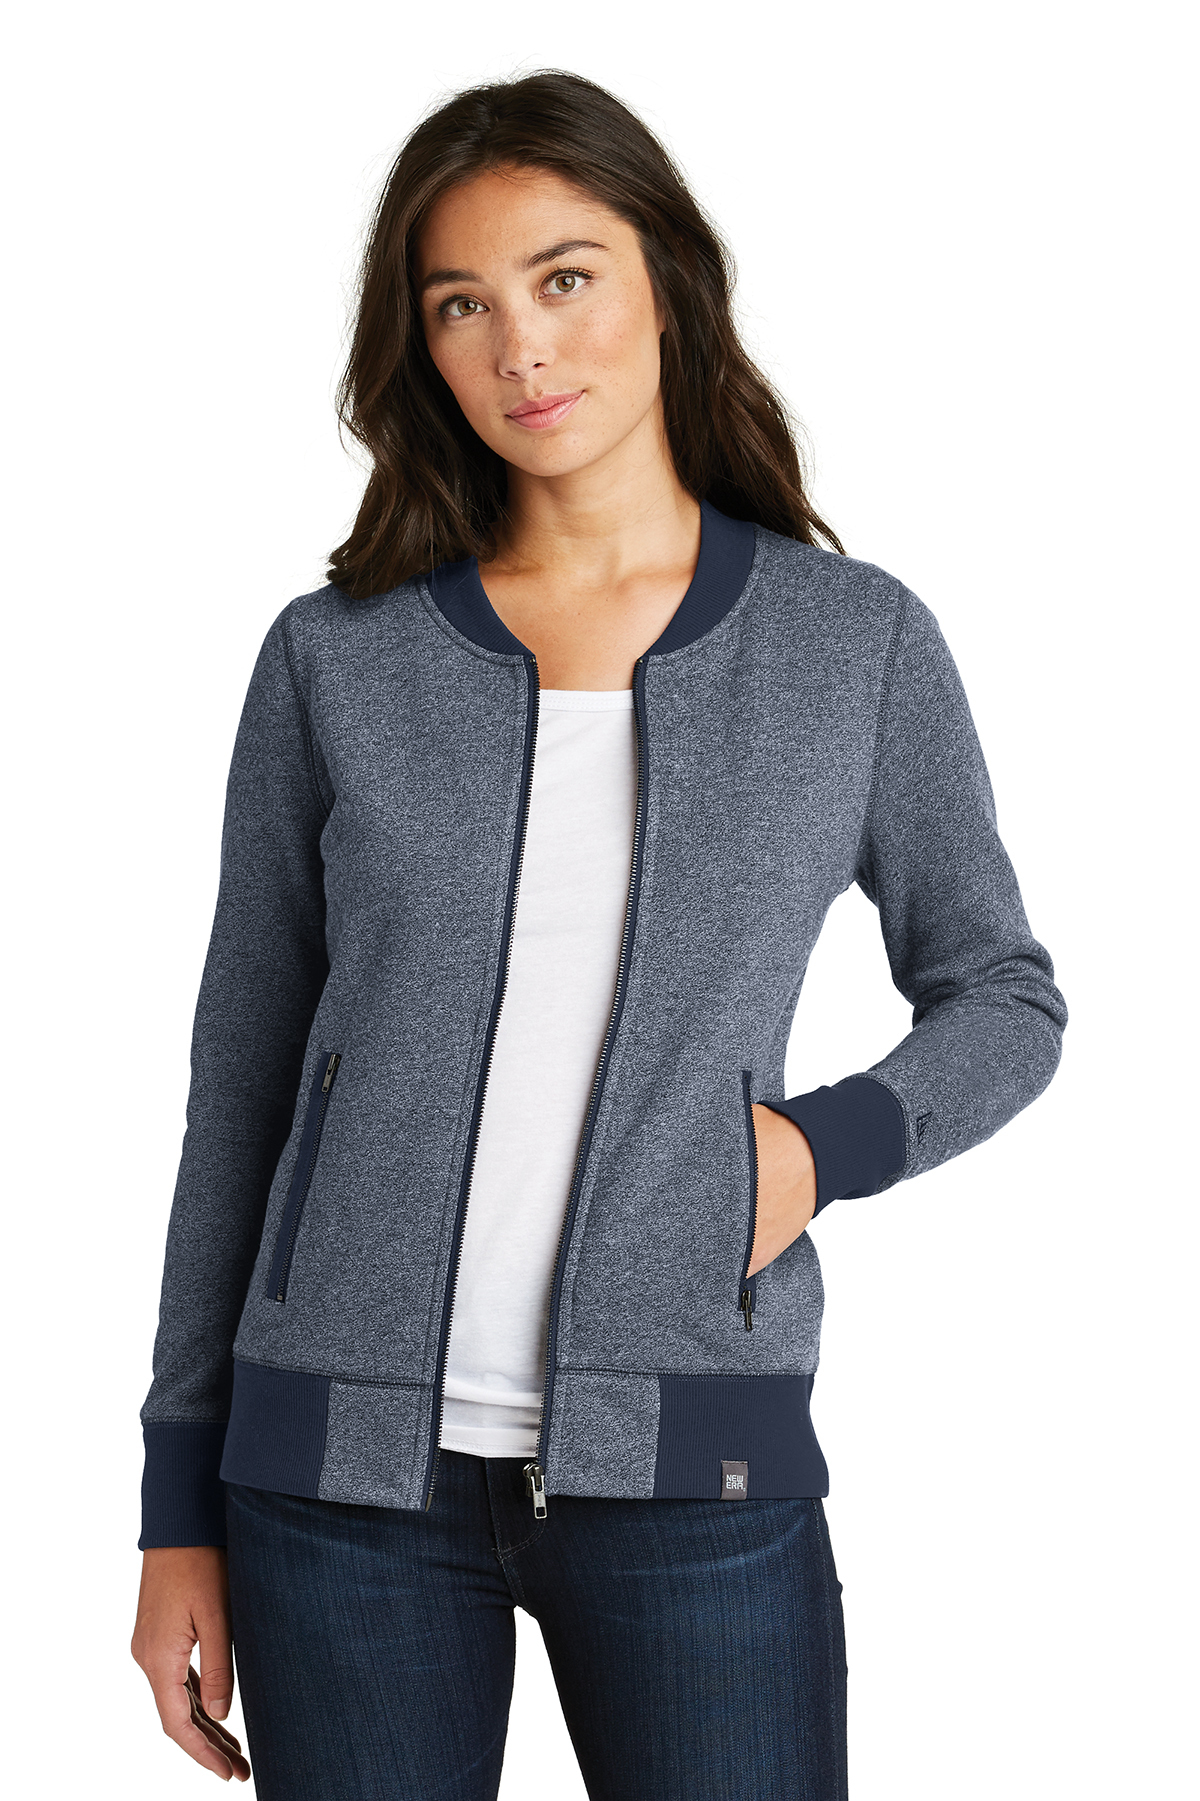 New Era LNEA503 - Ladies French Terry Baseball Full Zip Jacket